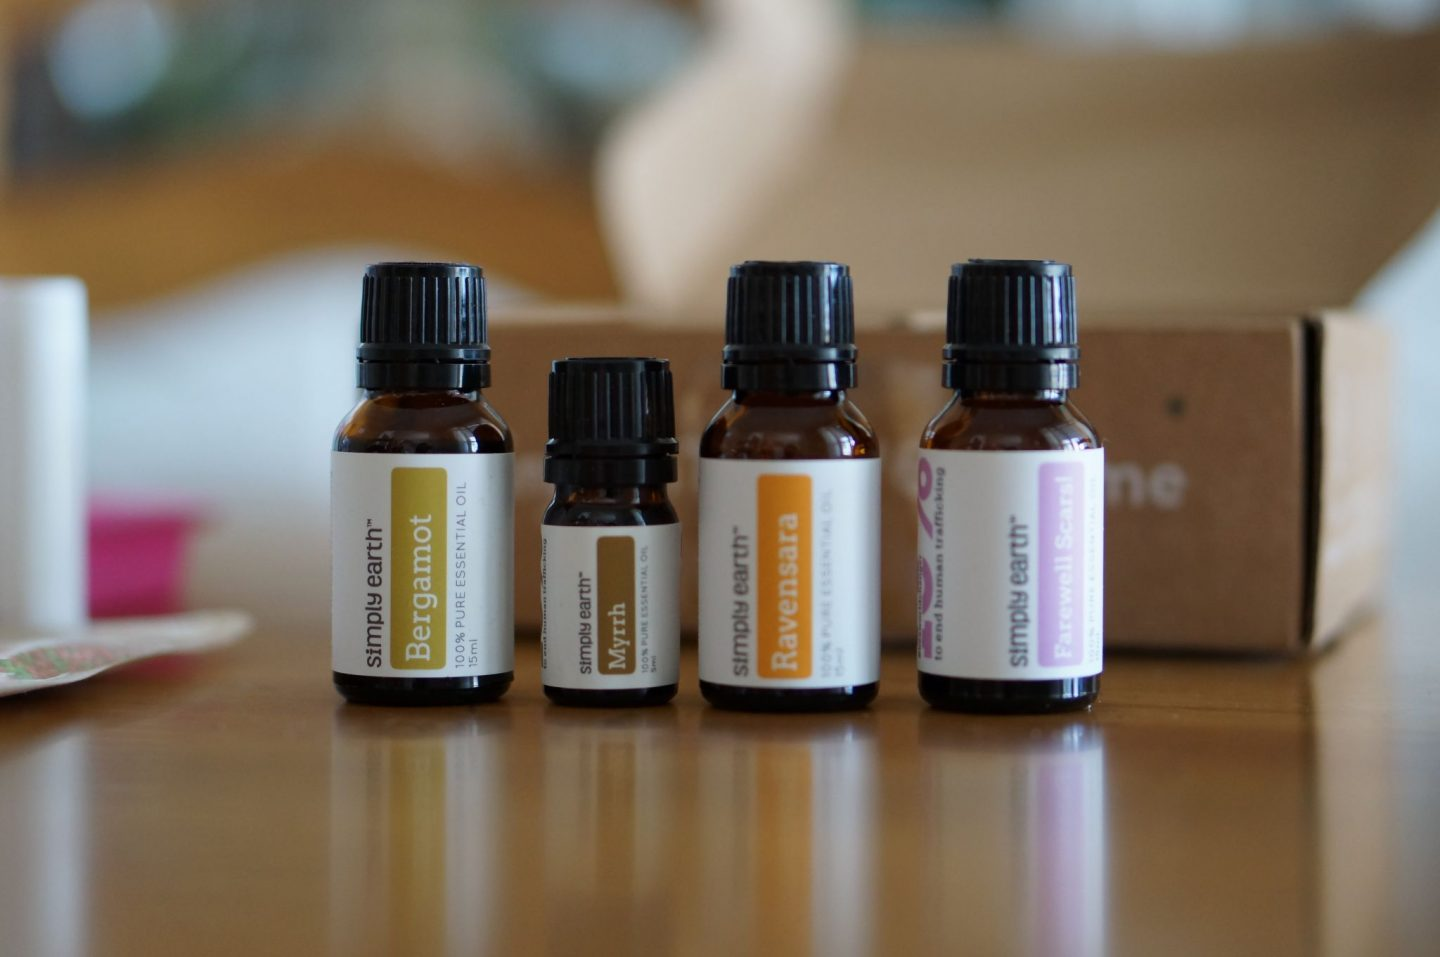 North Carolina blogger Rebecca Lately shares her Simply Earth box for January 2019. This is a DIY essential oil subscription!